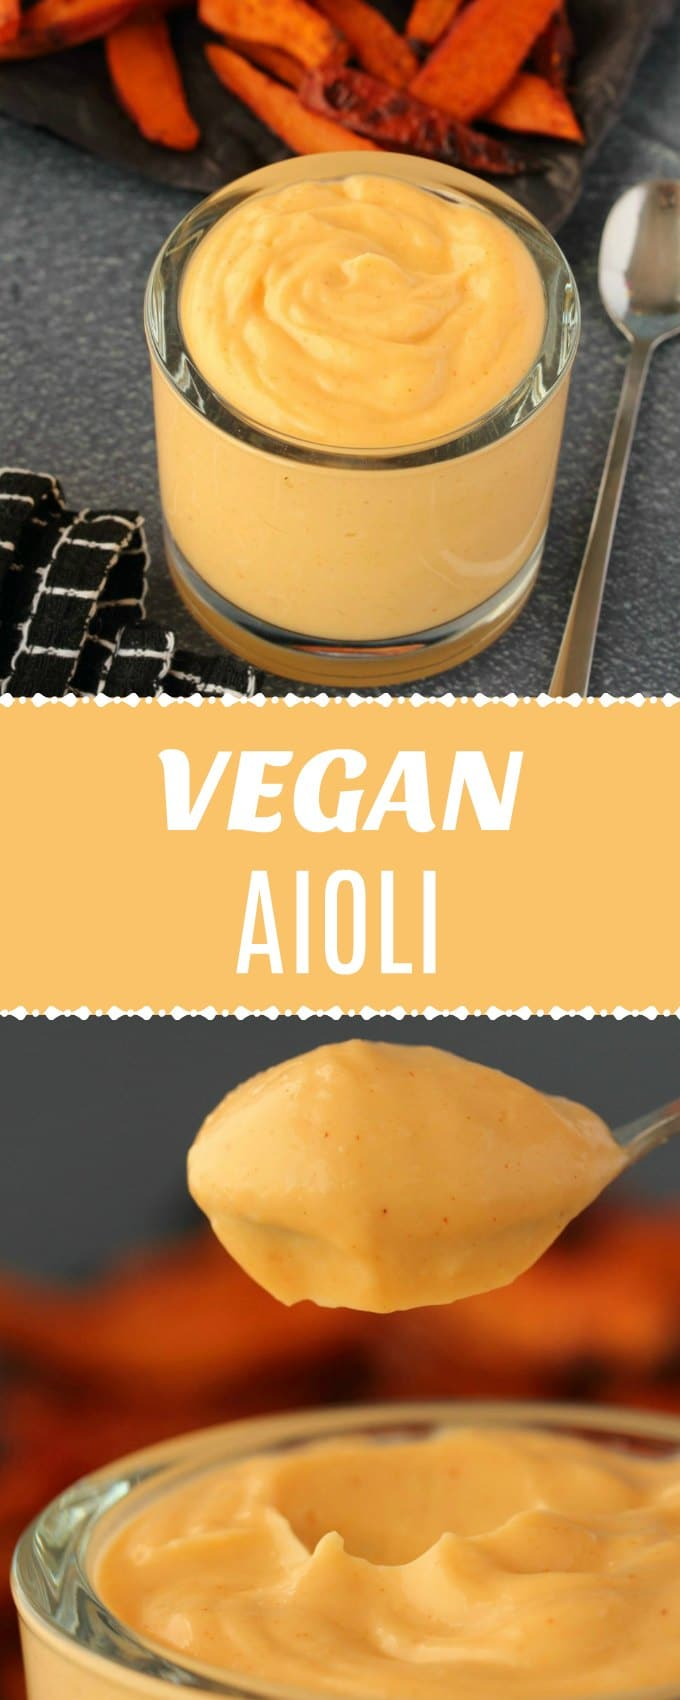 Creamy and garlicky vegan aioli made with simple ingredients and ready in a few minutes. Delicious as a dip, dressing, spread or topping! | lovingitvegan.com